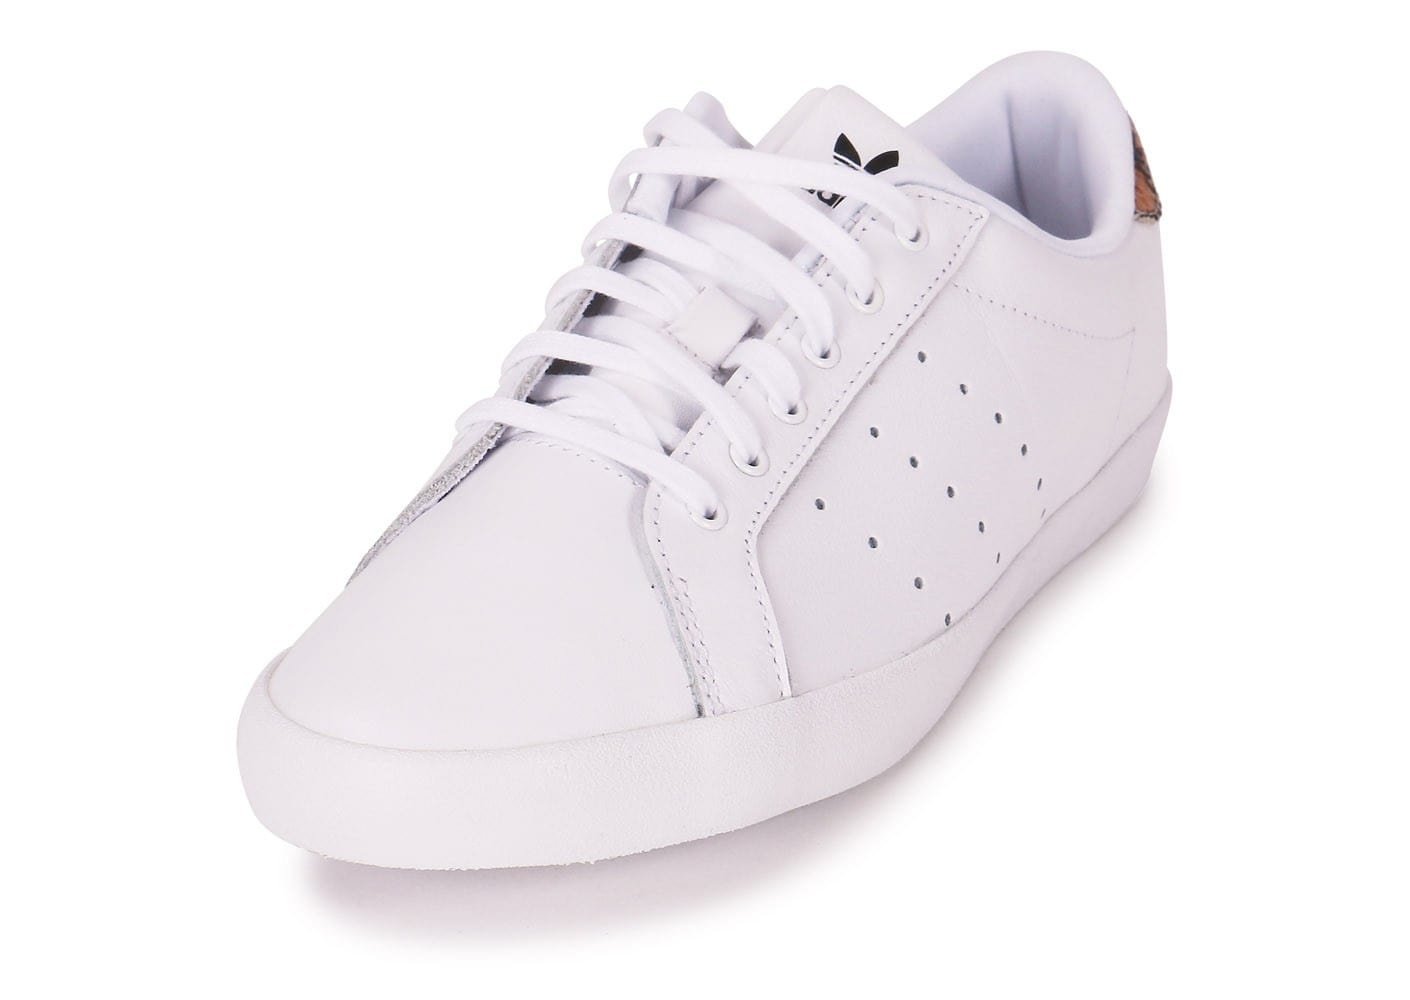 Miss Stan Reptile Adidas Chaussures Chausport Blanche mN0ynvO8w